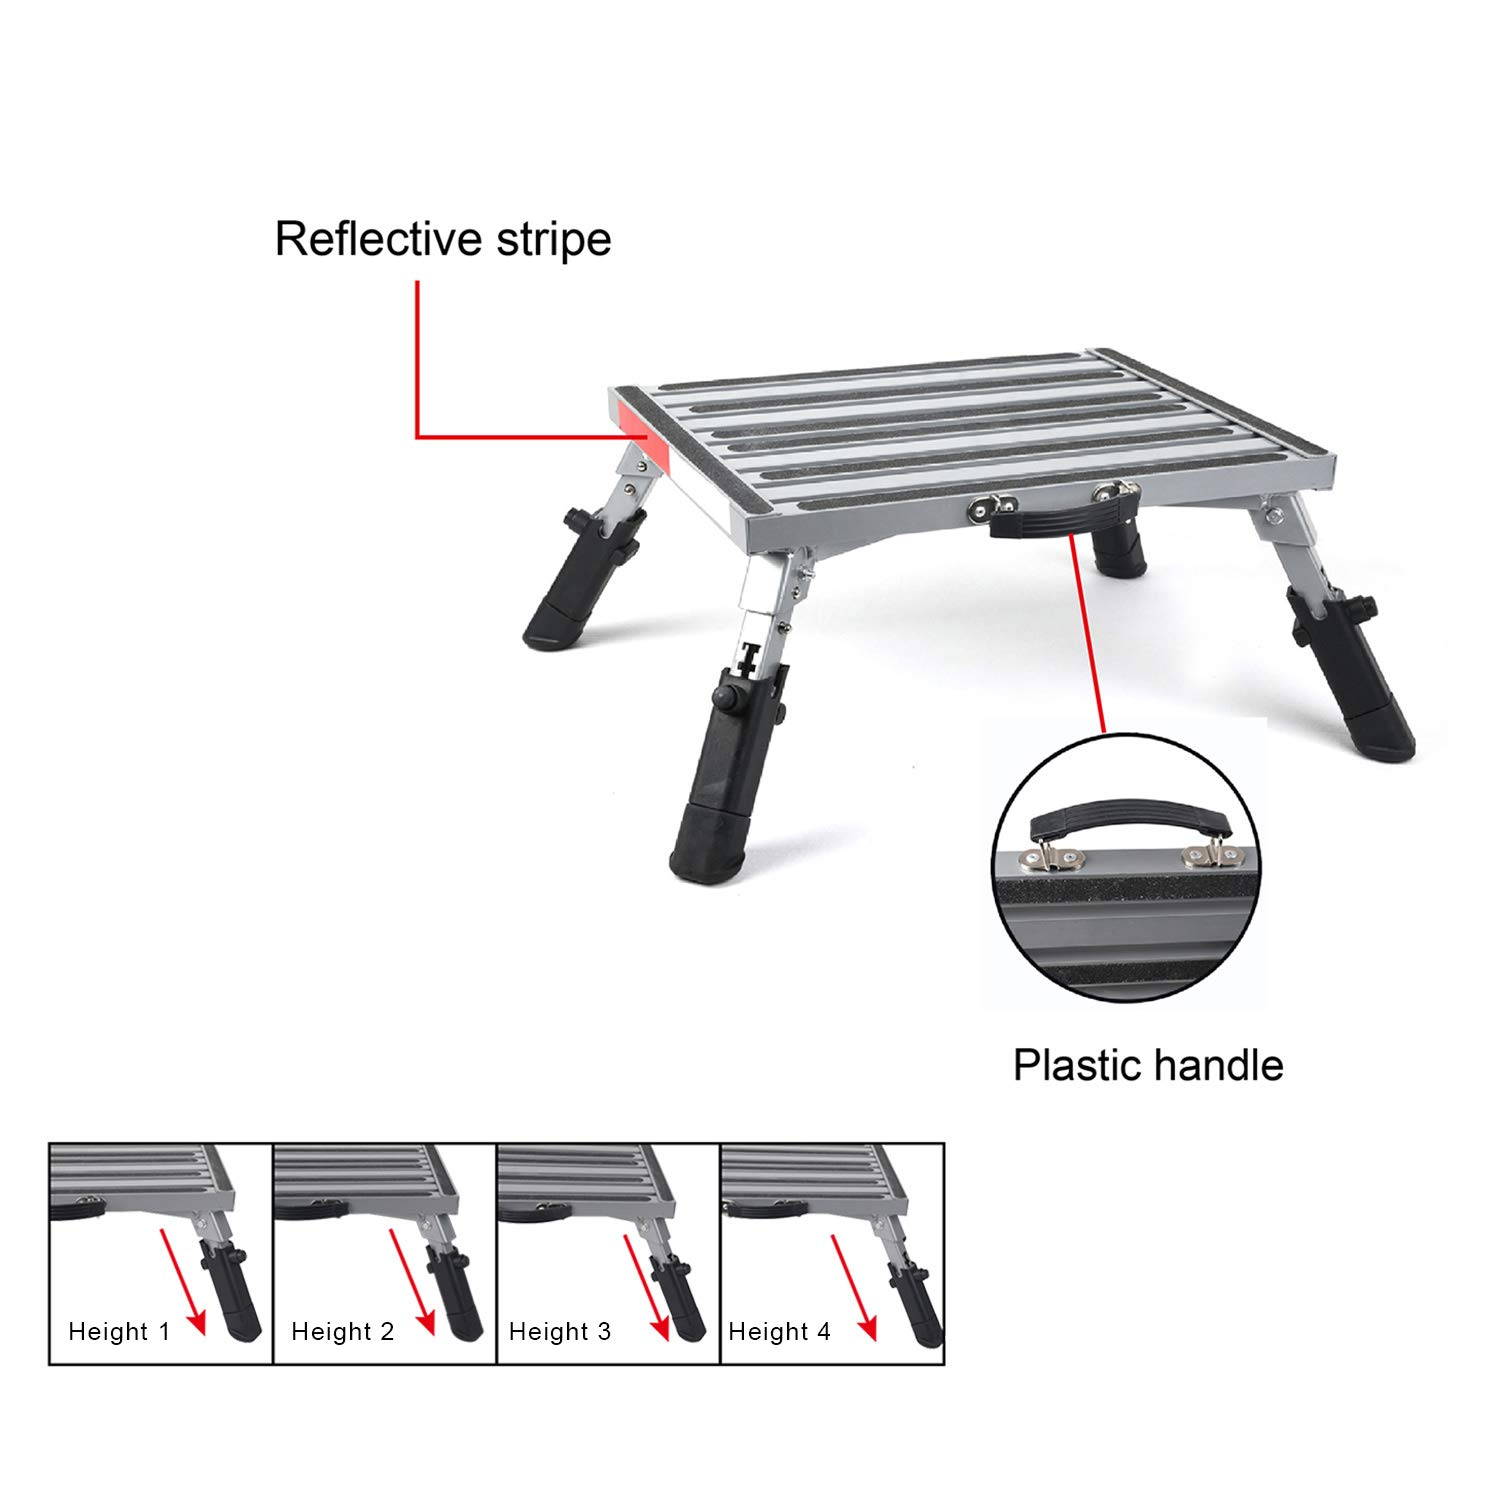 Pr1me 19'' x 14.5'' Extra Size RV Folding Step Stool, 440lbs, Height Adjustable, Aluminium with Reflective Stripe, Anti-Slip Surface and Extra Grip by Prime 1